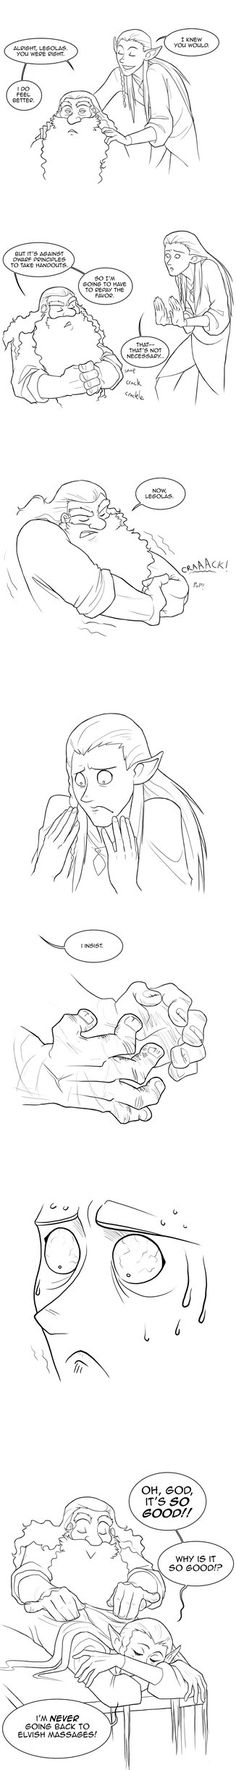 Once you've had dwarf... by `hibbary on deviantART